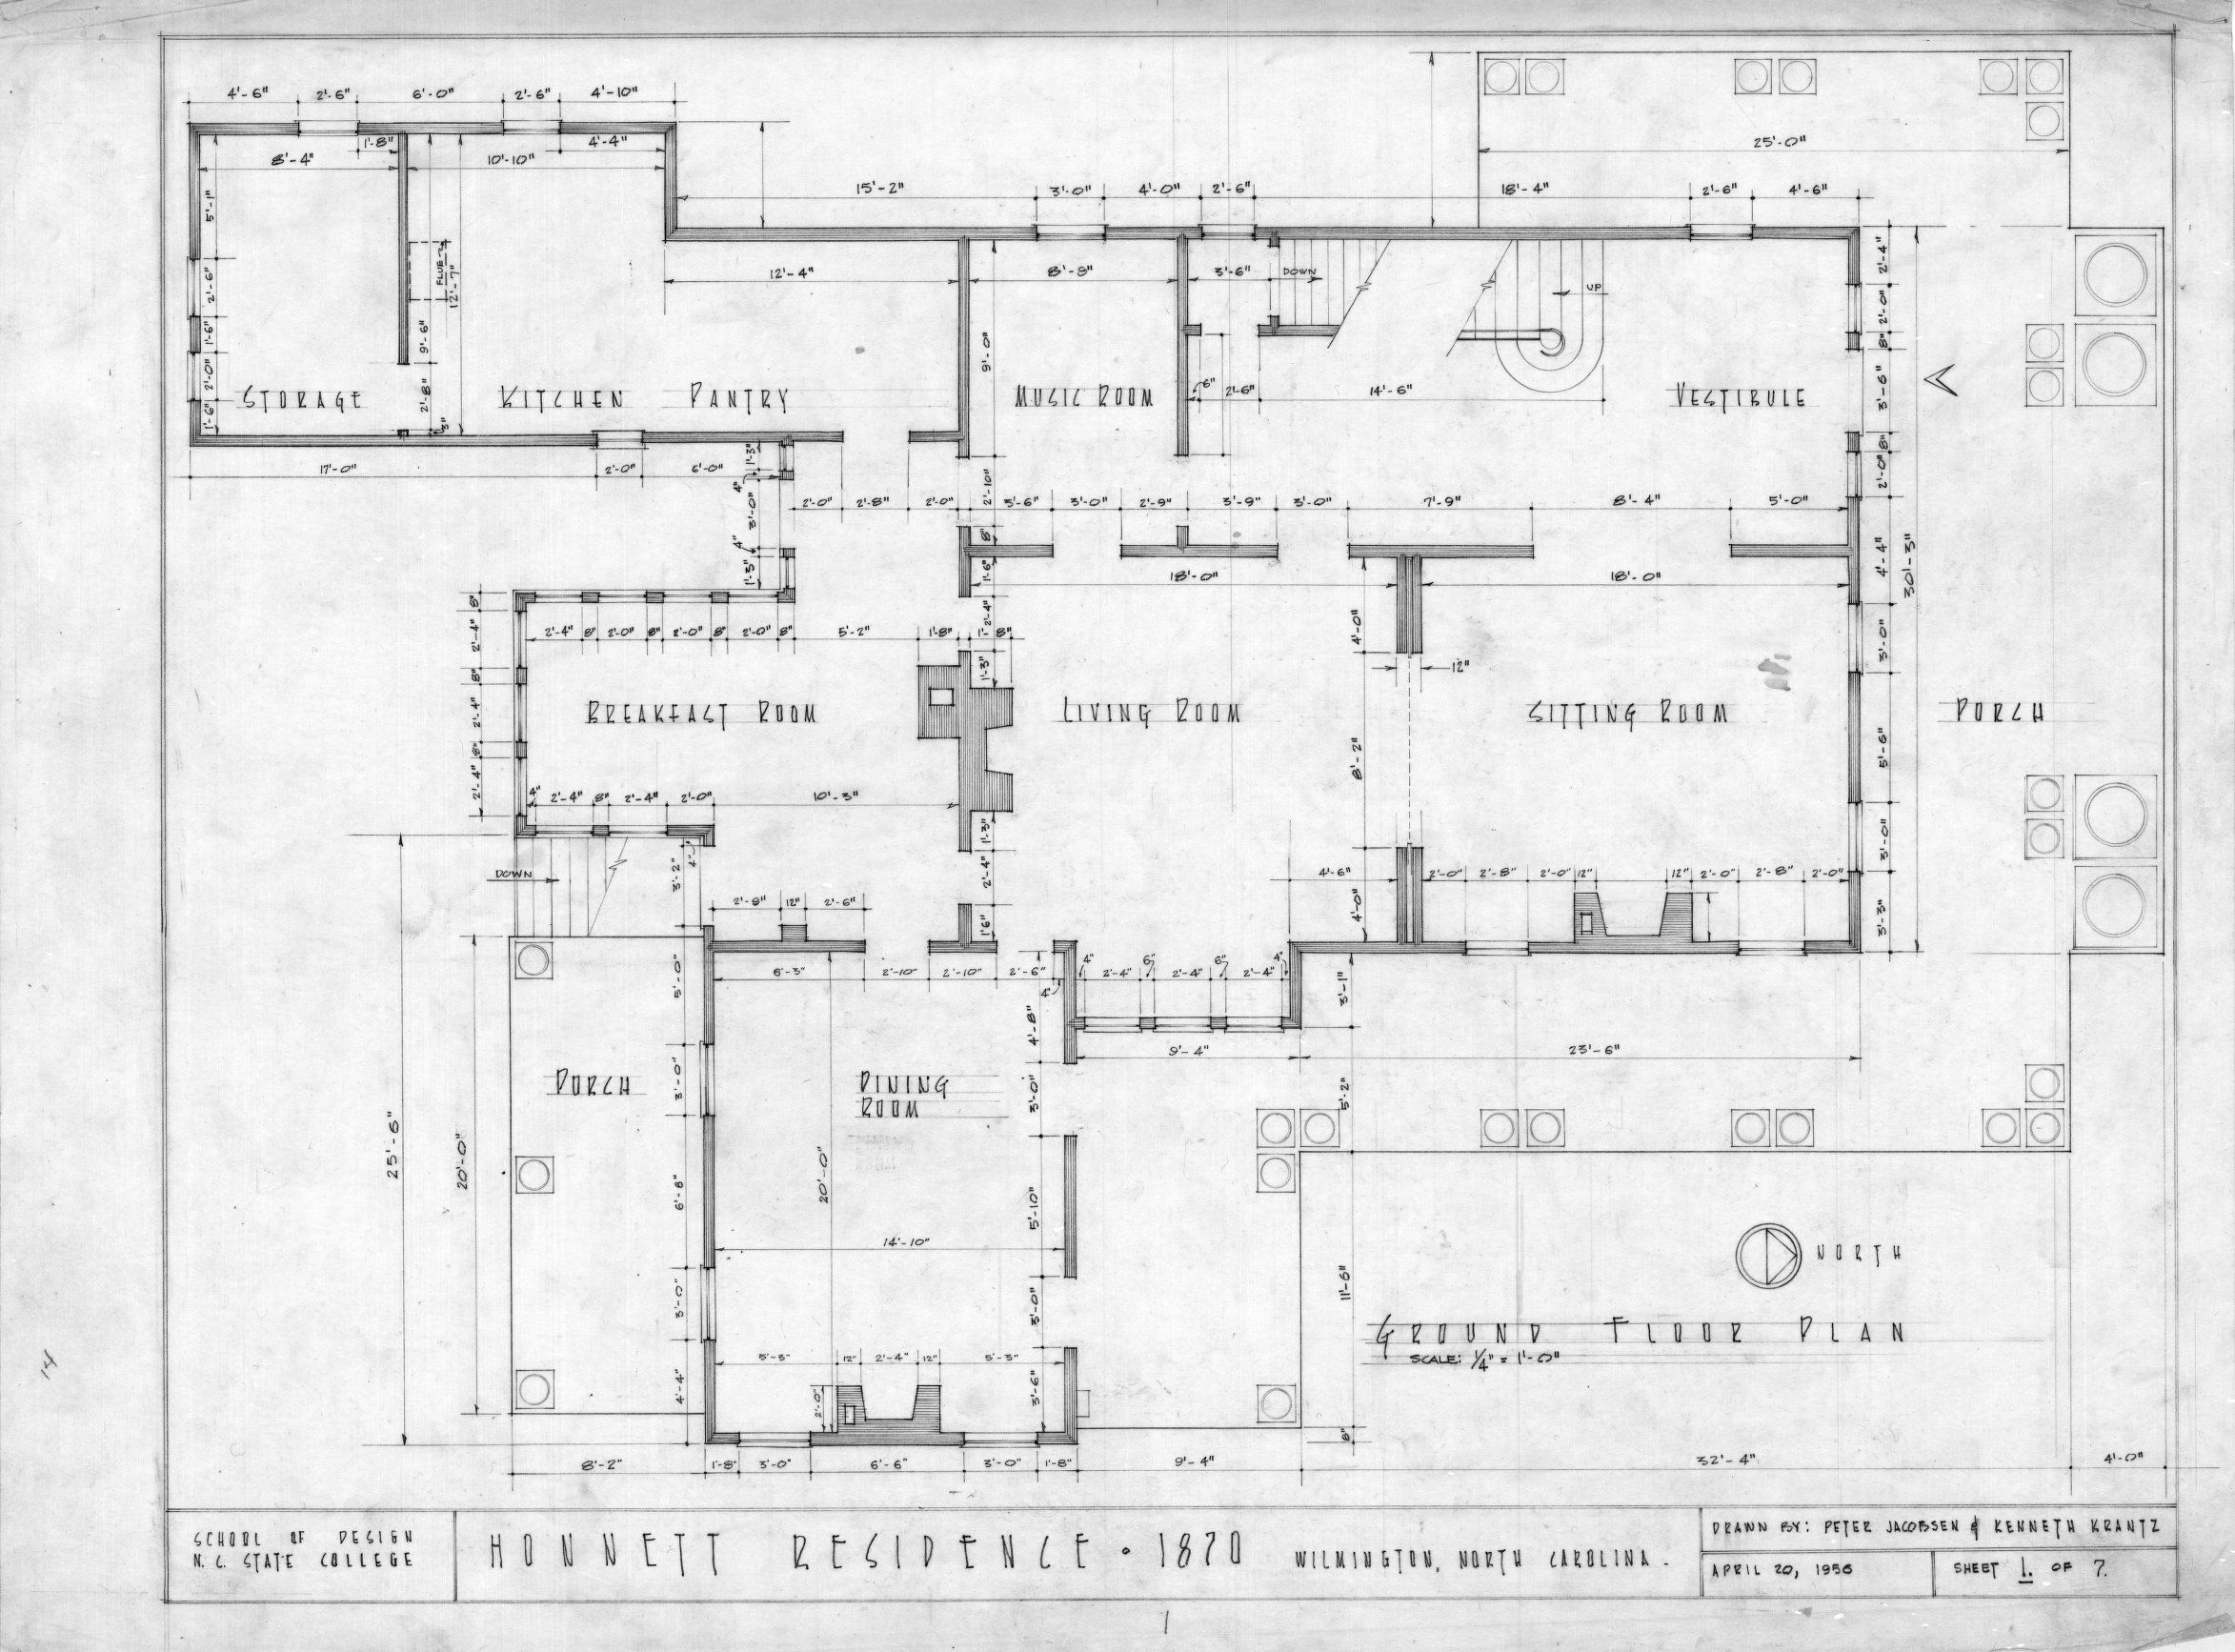 Italianate House Plans Historic 1870 Floor Plans Townhouse House Plans